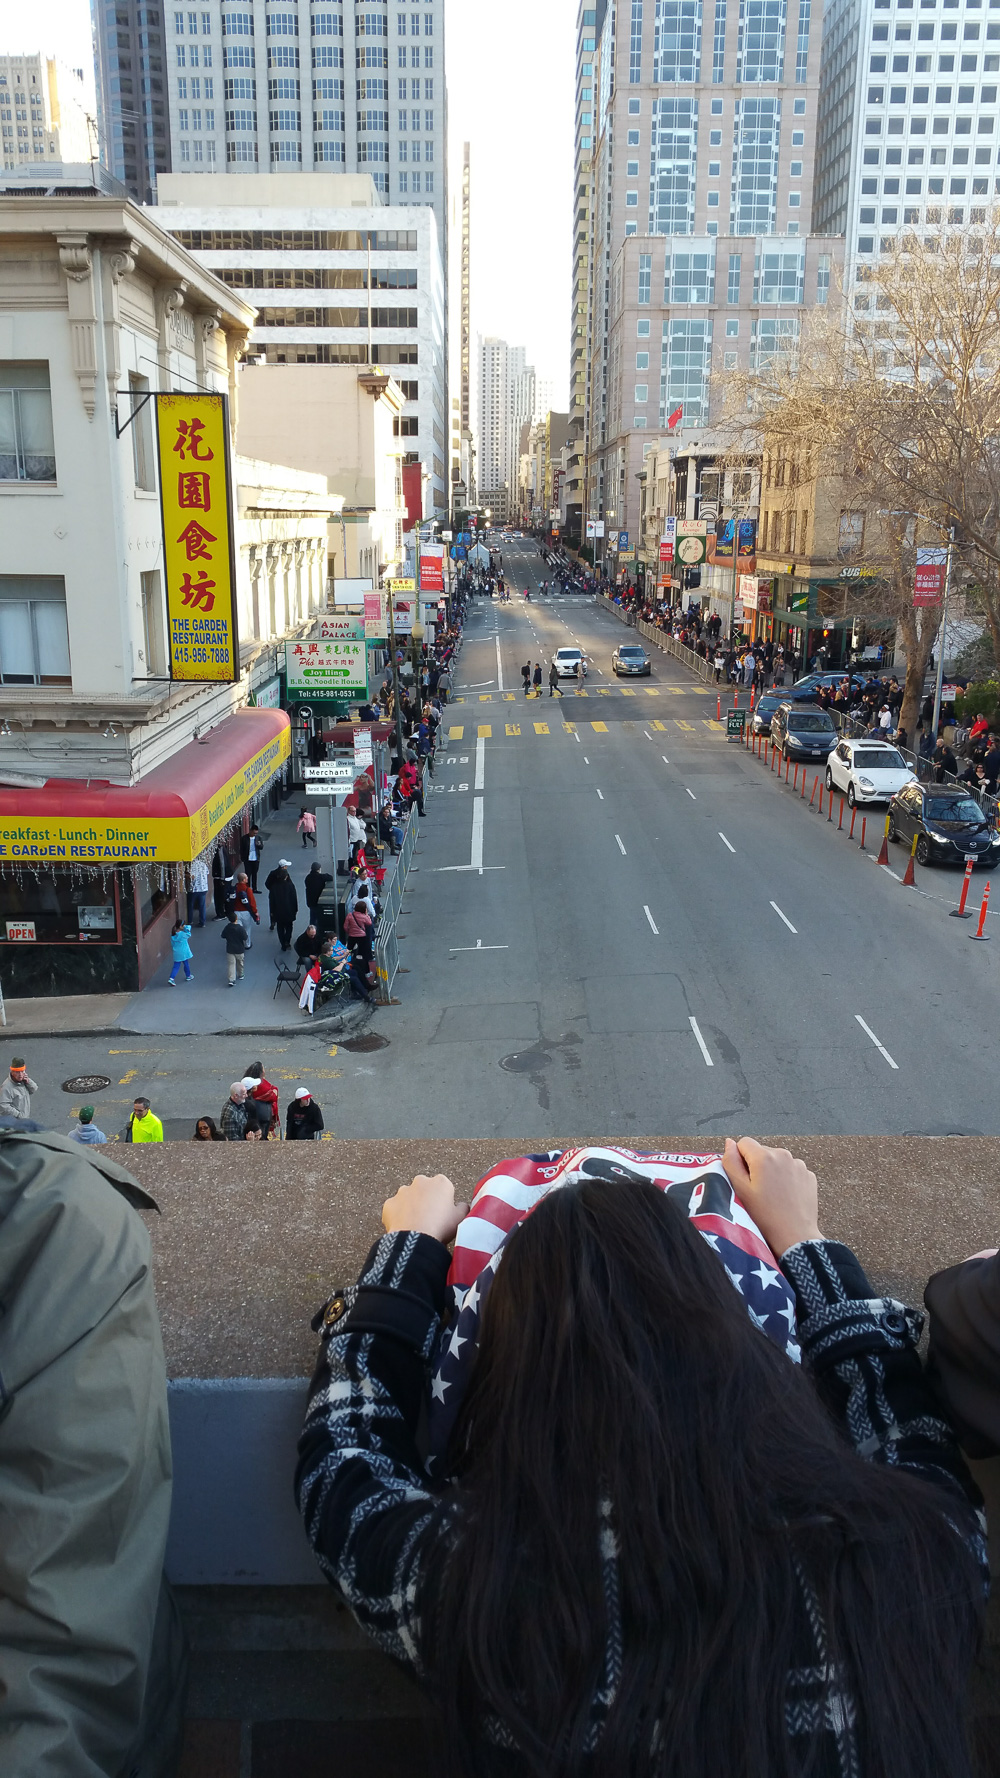 San Francisco Chinese New Years parade along the parade route as crowds arrive